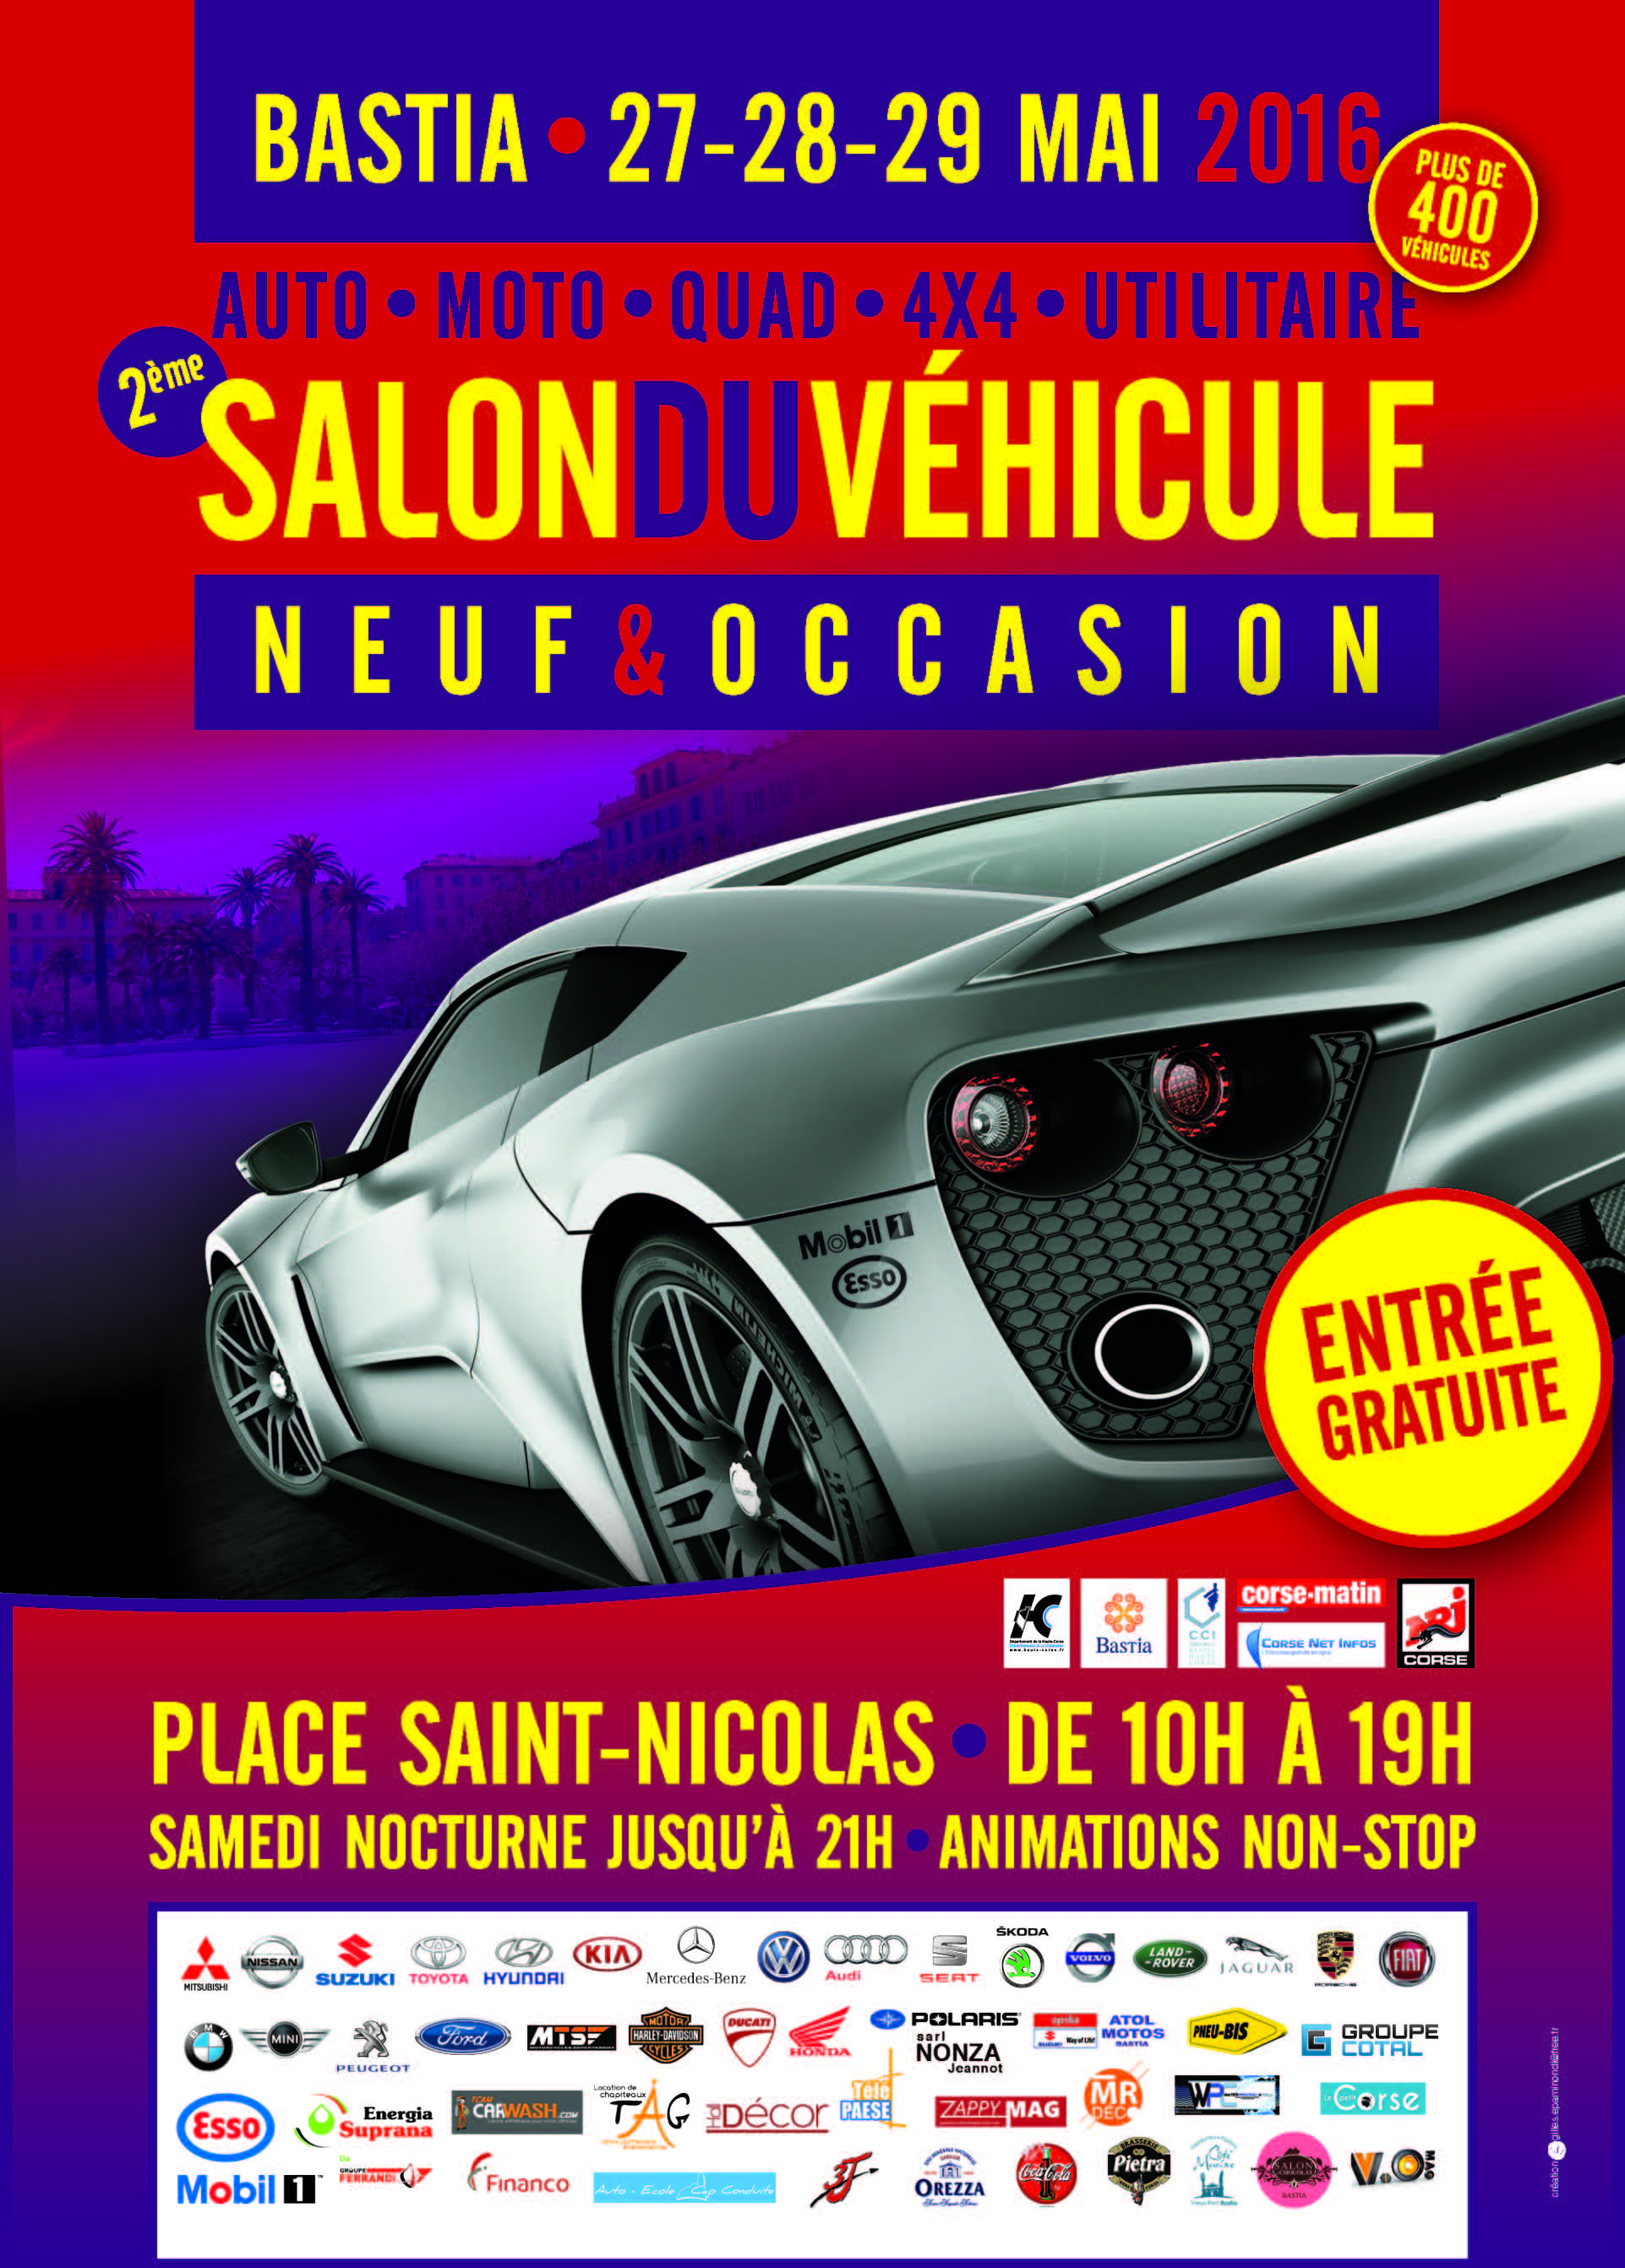 le coin des passionn s d 39 automobiles salon du v hicule neuf et d 39 occasion de bastia on ouvre. Black Bedroom Furniture Sets. Home Design Ideas